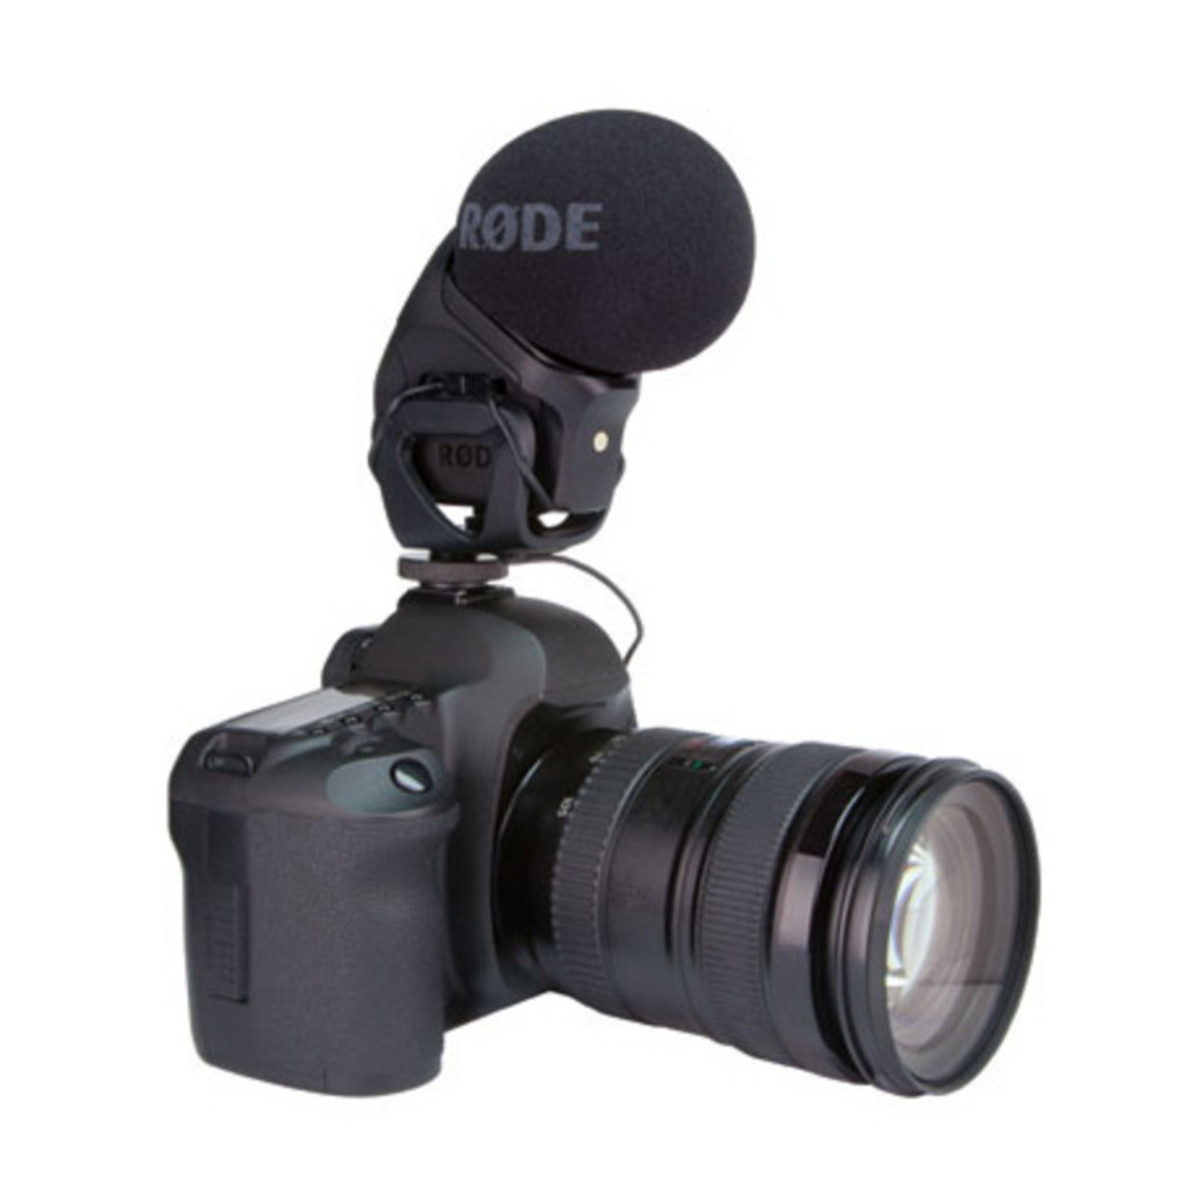 rode stereo mic pro manual